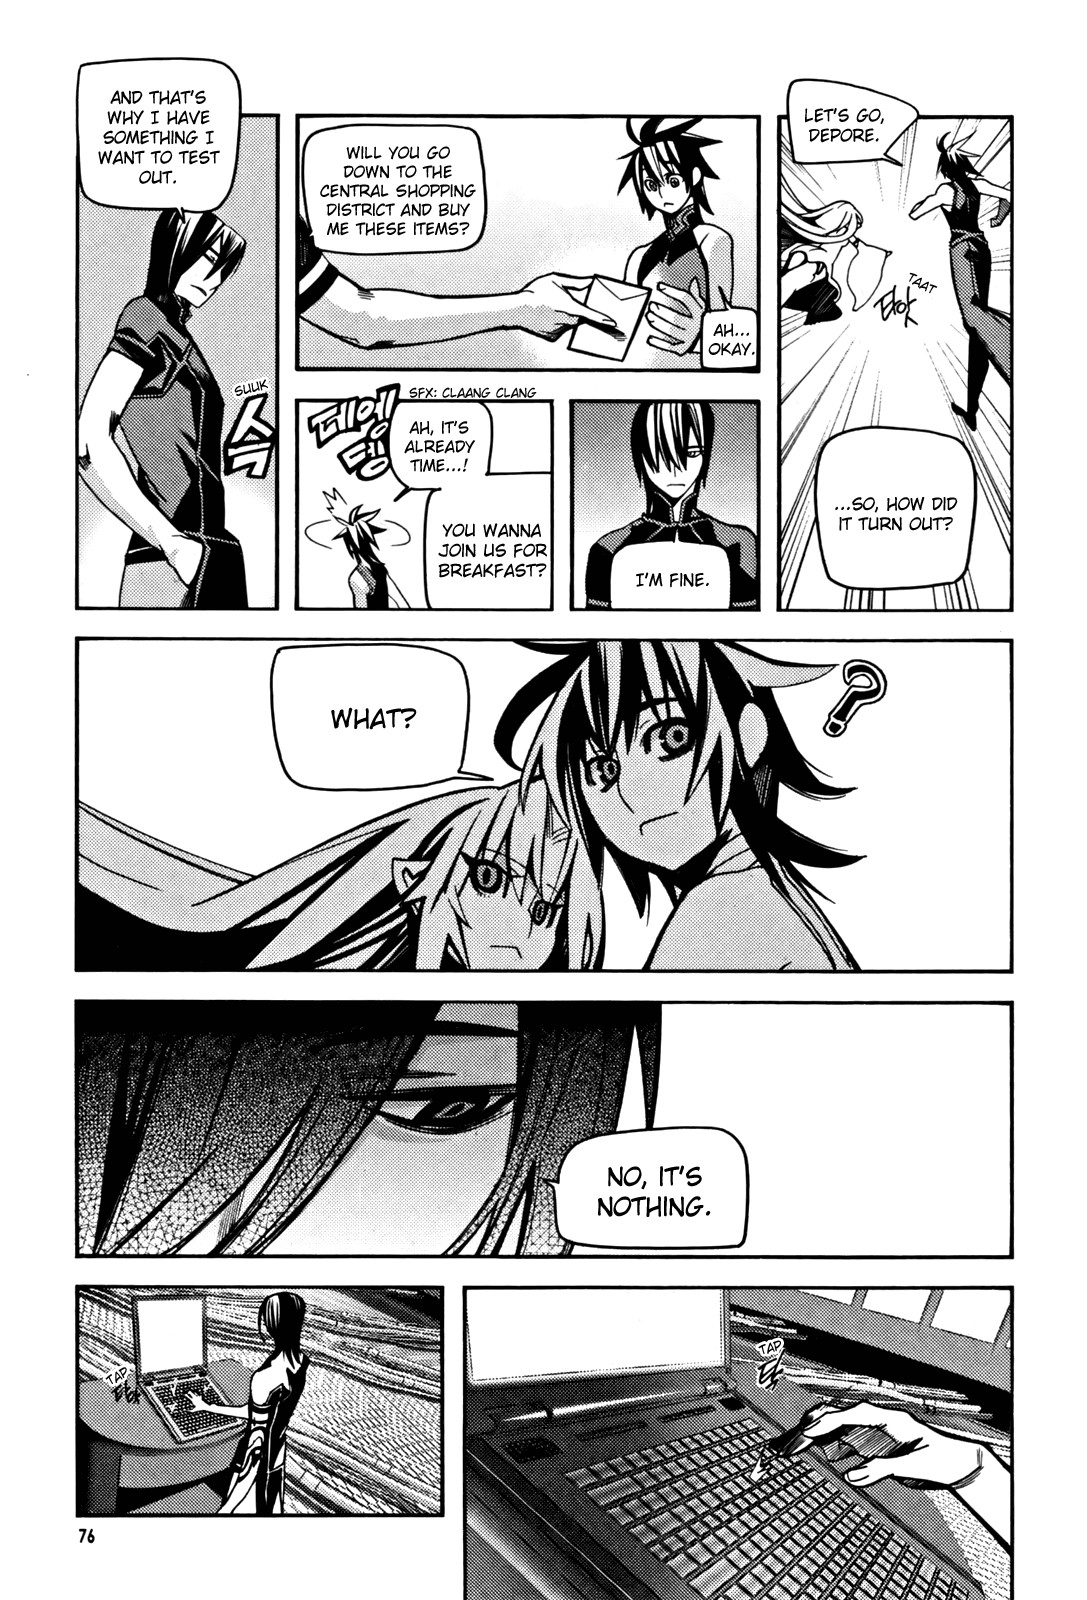 Read Cavalier Of The Abyss Chapter 30